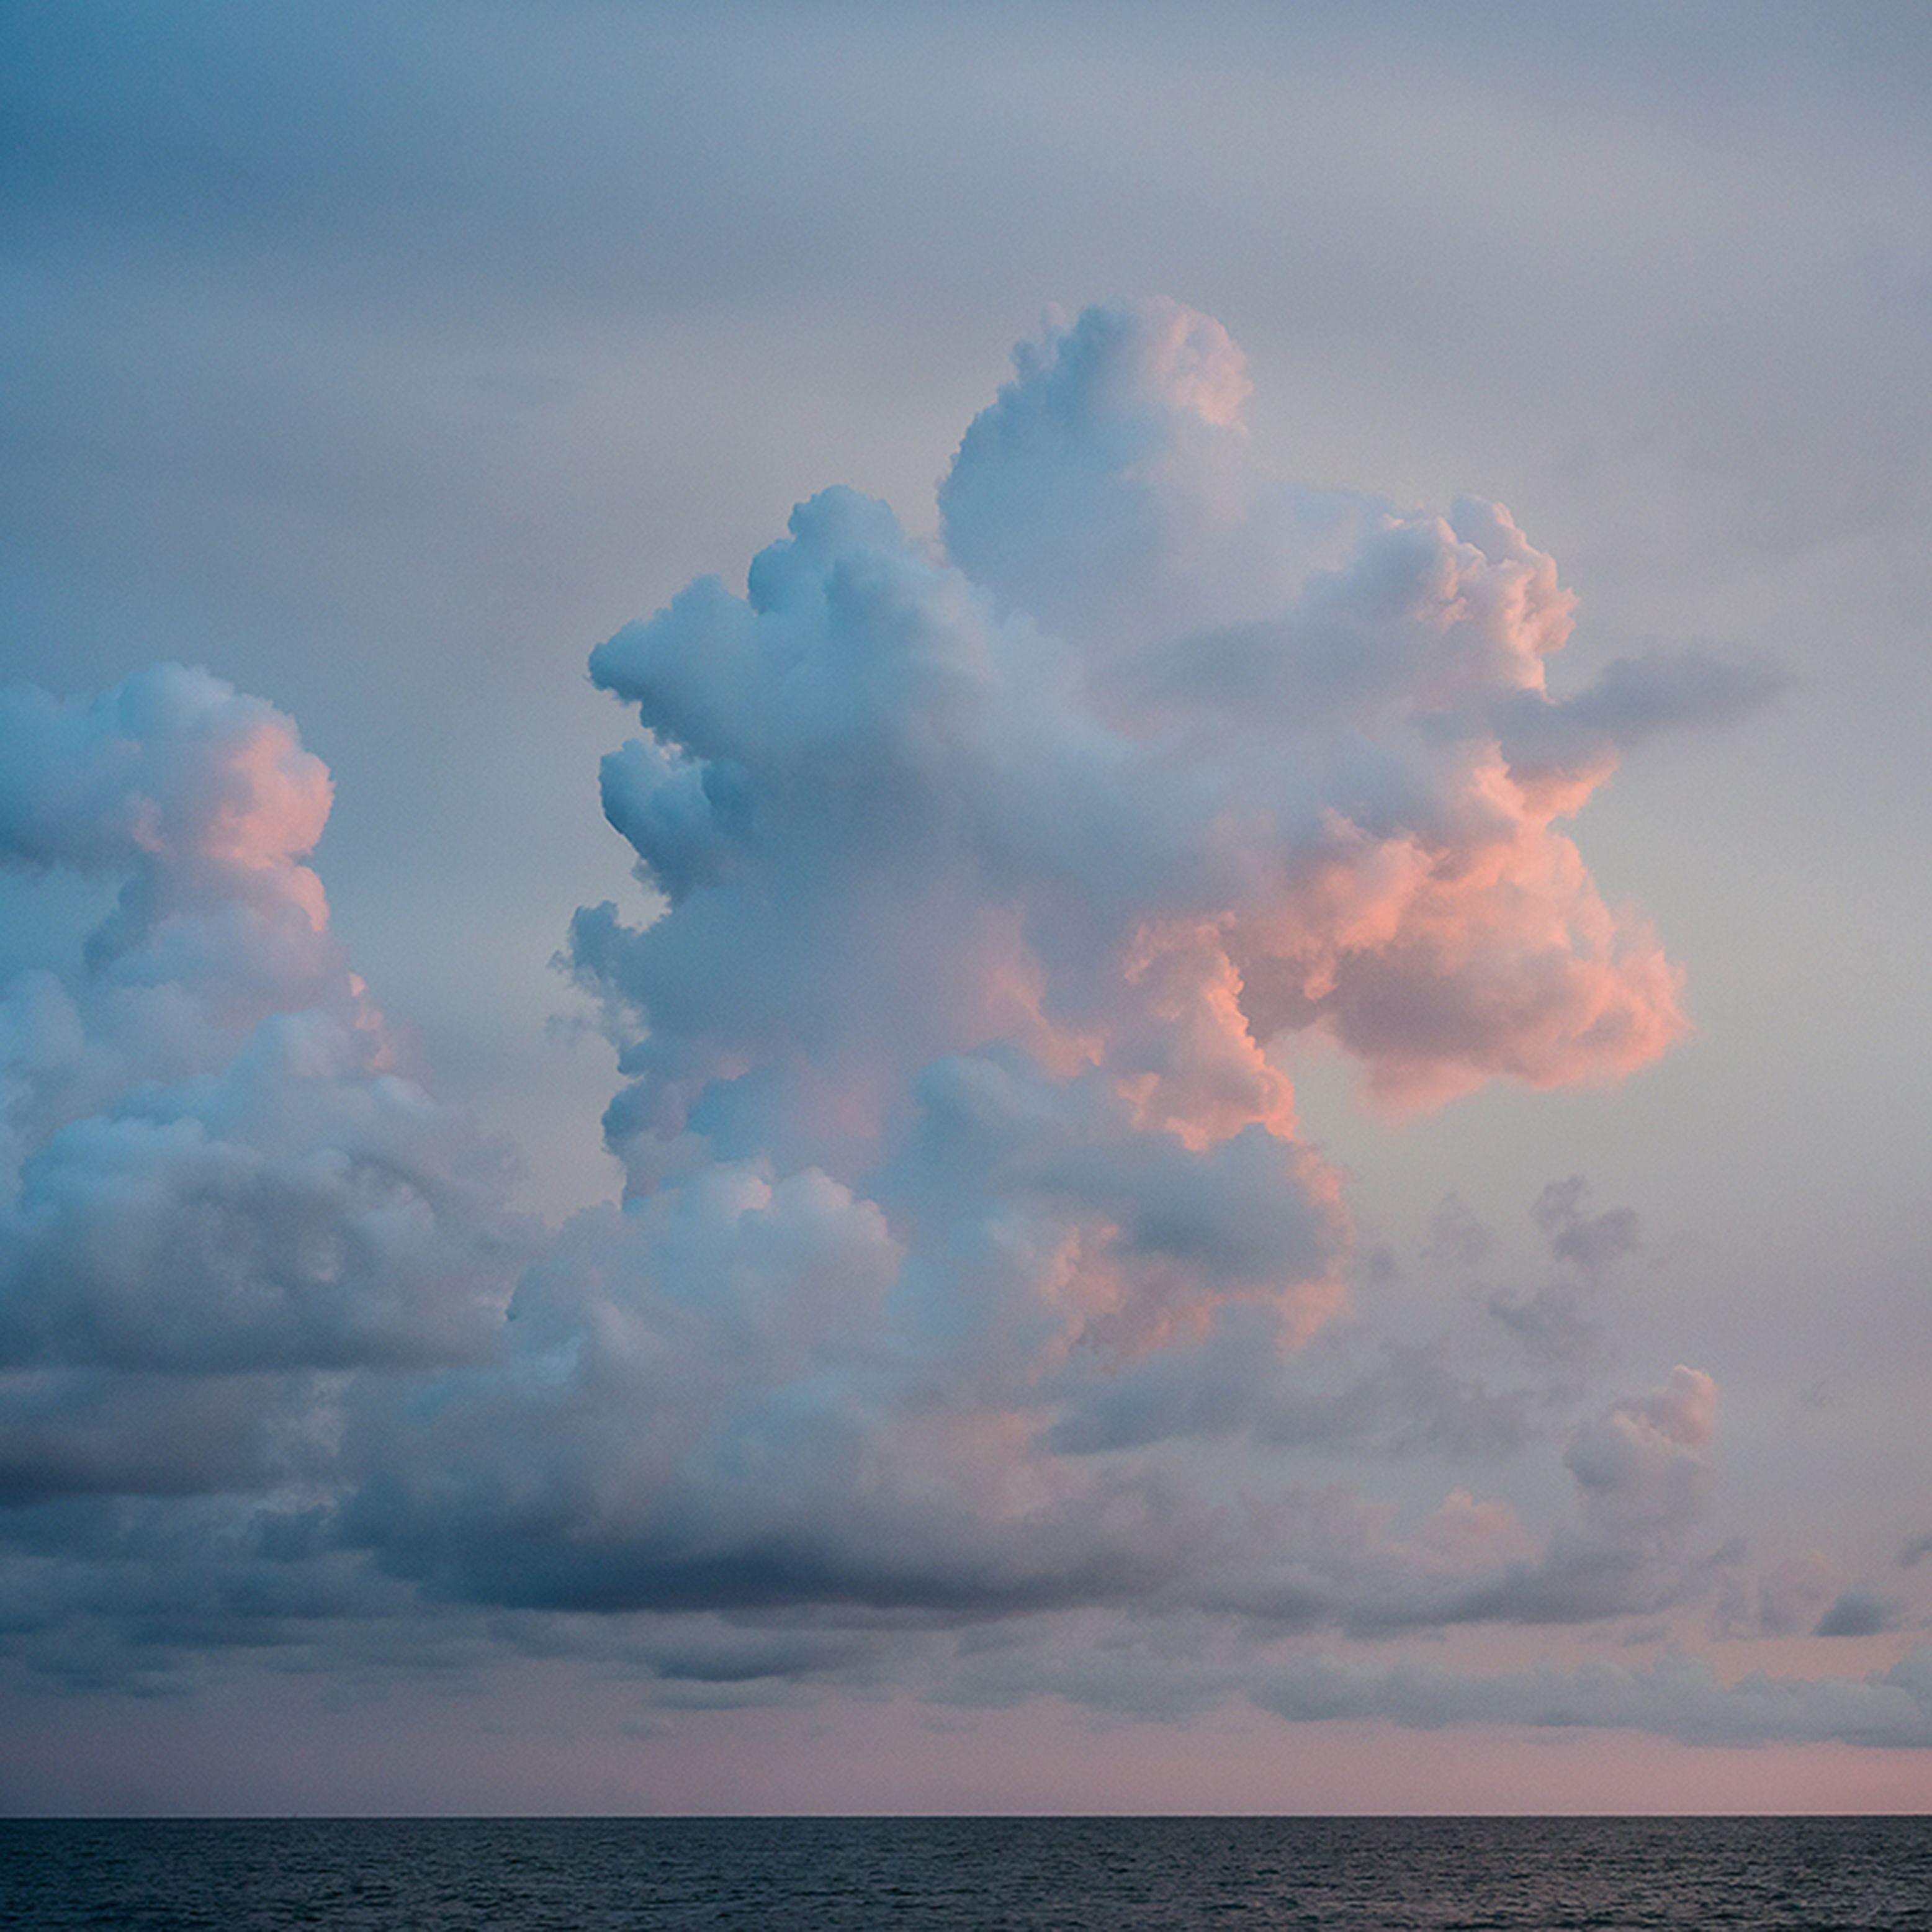 Contemplation 2, Captiva by Sloane Siklos, Photograph, 20.8 x 20.8  ::  This is a peaceful image of a sunset over the gulf of Mexico, taken from Captiva Island in Florida. The sunset clouds are coloured pale pink and orange, and seem to form the shape of a unicorn in the sky.     This is a photographic C print on Fuji paper. The image measures 20.75 x 20.75 on 24 x 24 in paper. A white border surrounds the image. This is an artist proof at this size. The image is available in additional sizes up